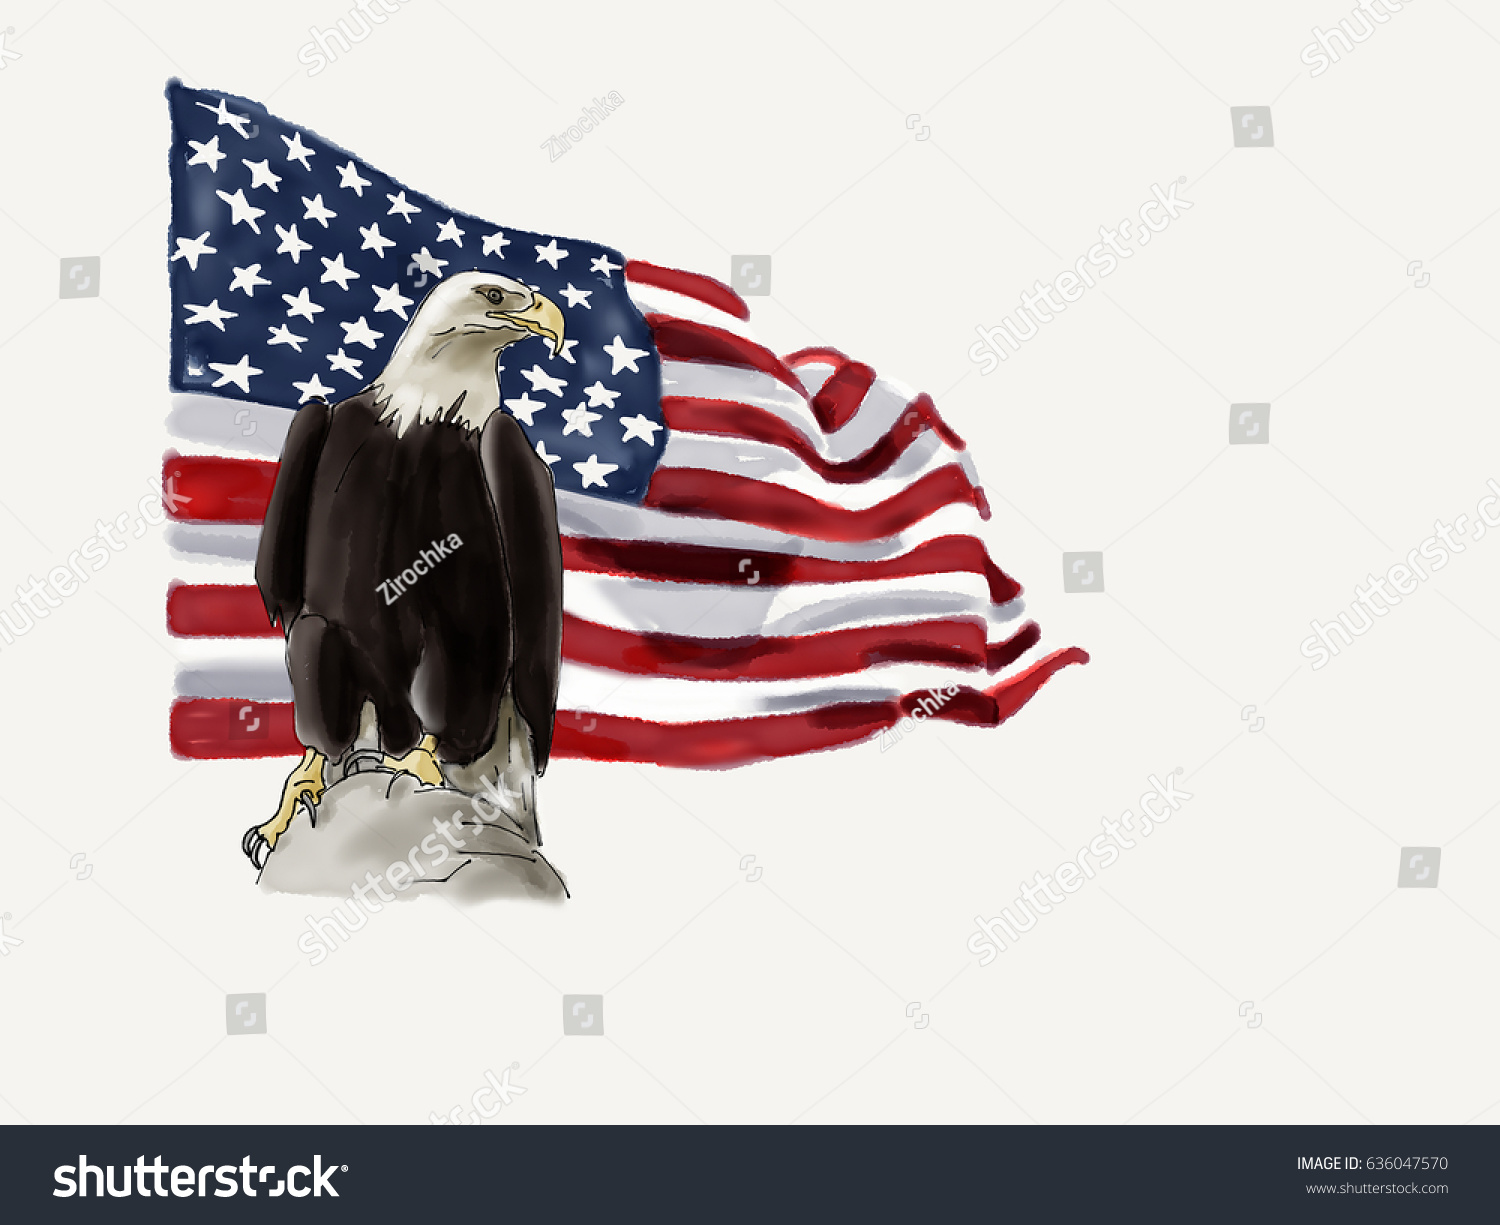 America Flag America American Eagle Symbol Handdrawn Watercolor